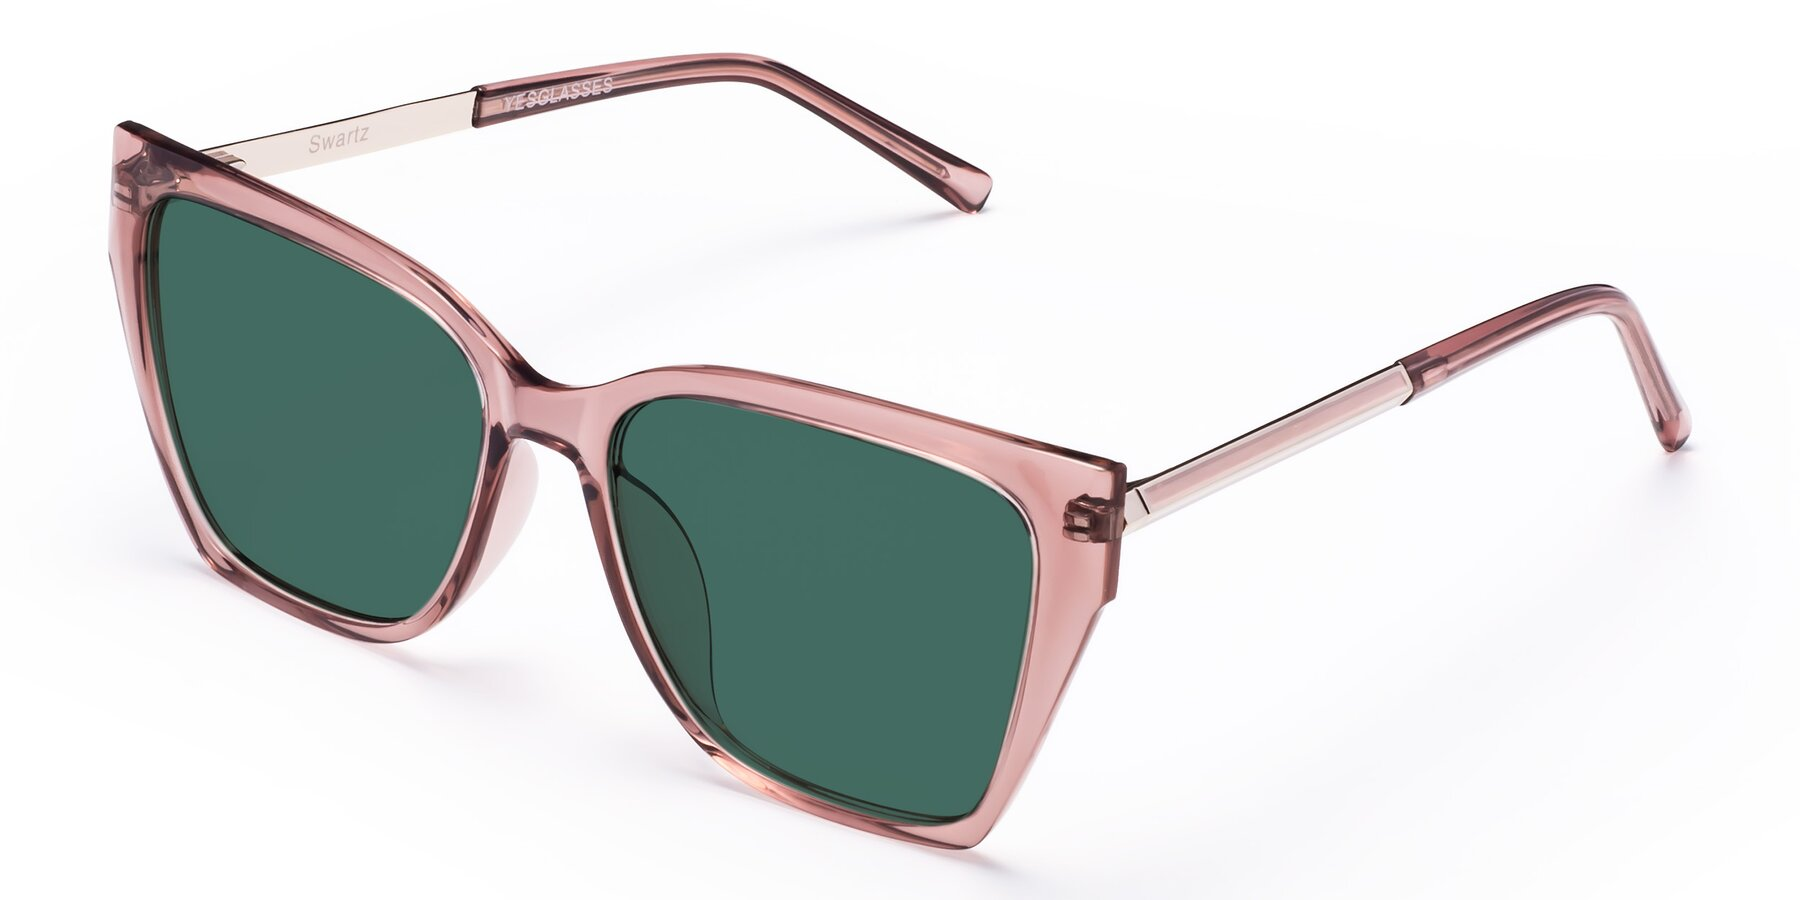 Angle of Swartz in Grape with Green Polarized Lenses